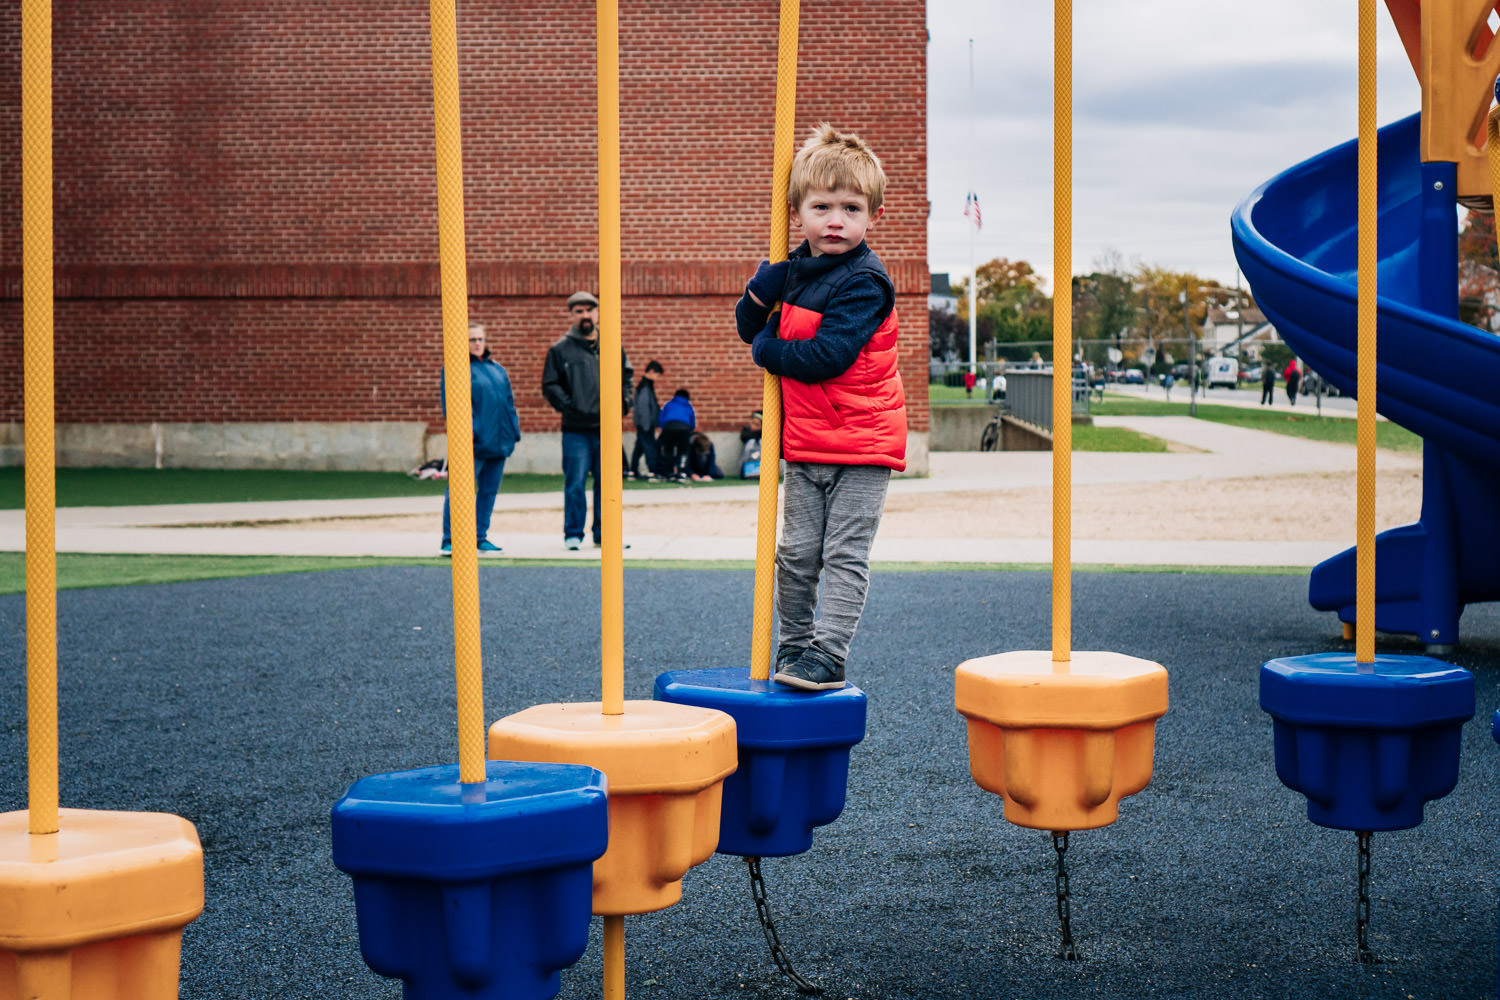 A little boy plays on a playground structure.